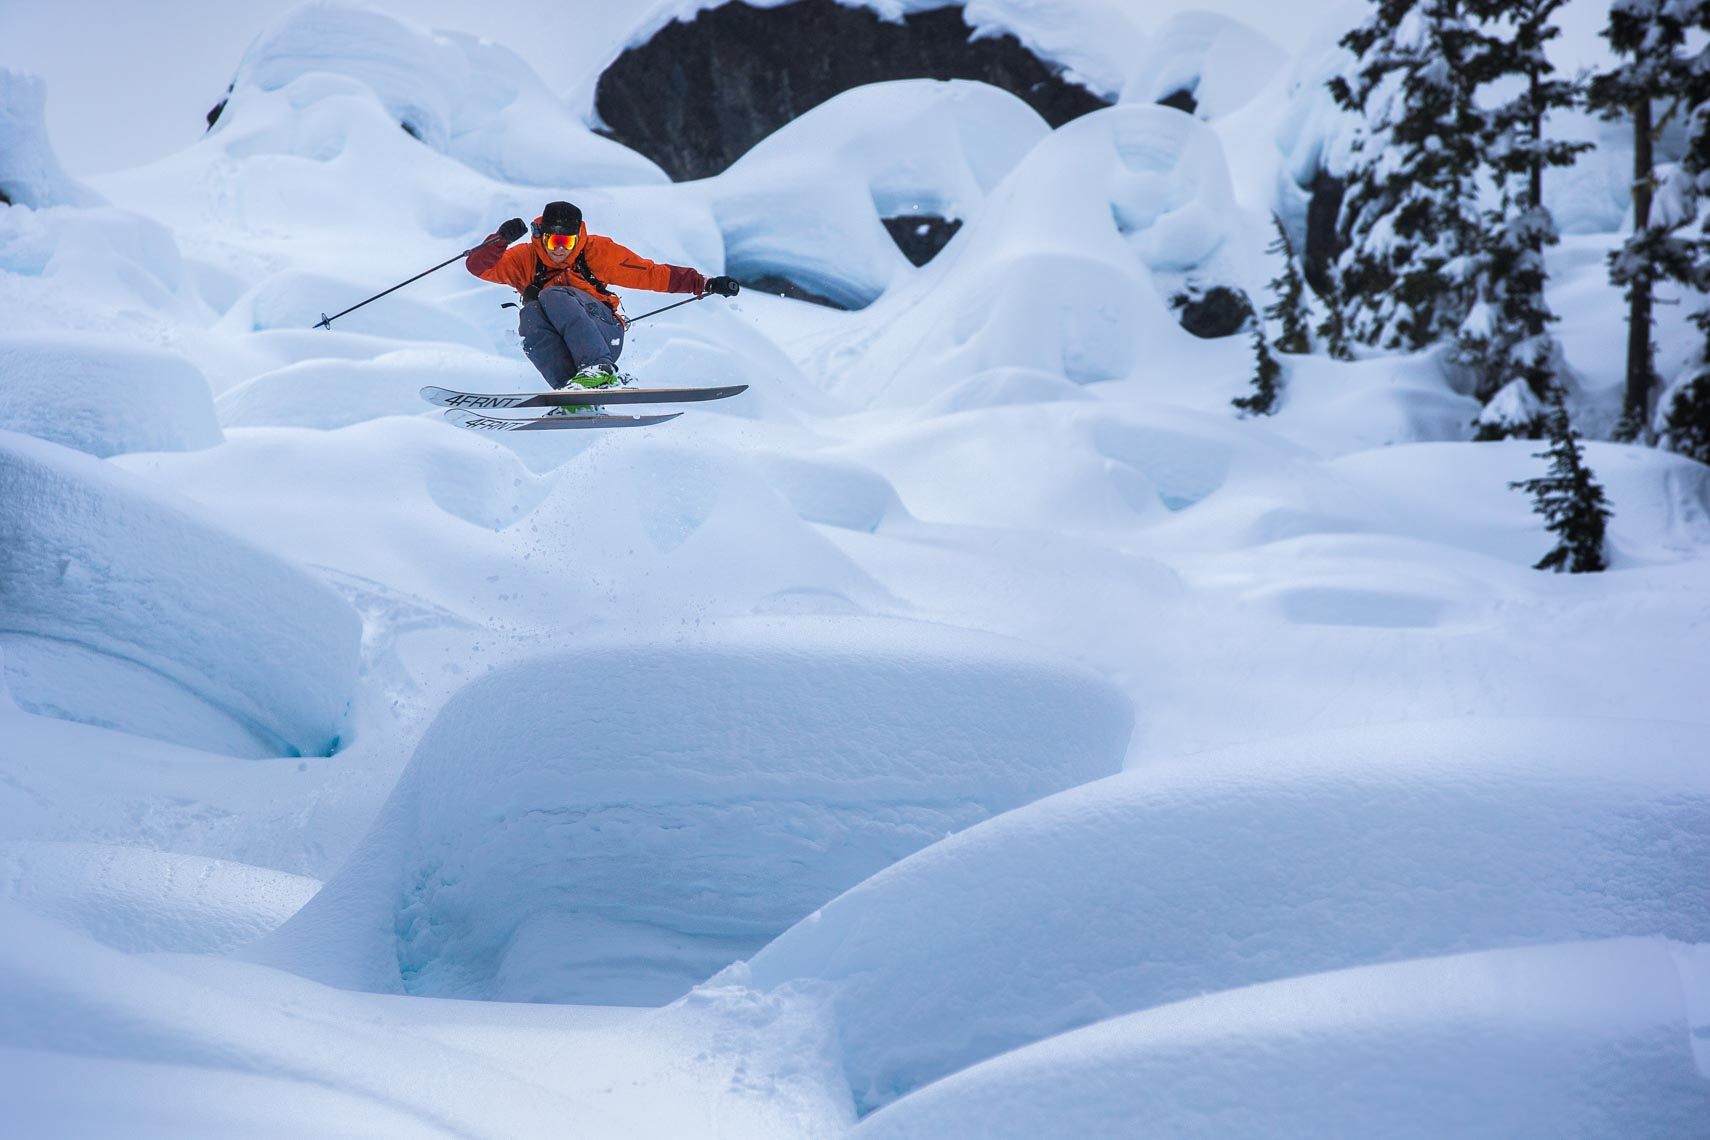 Eric Hoji Hjorleifson skiing in Whistler British columbia shot by pro ski photographer